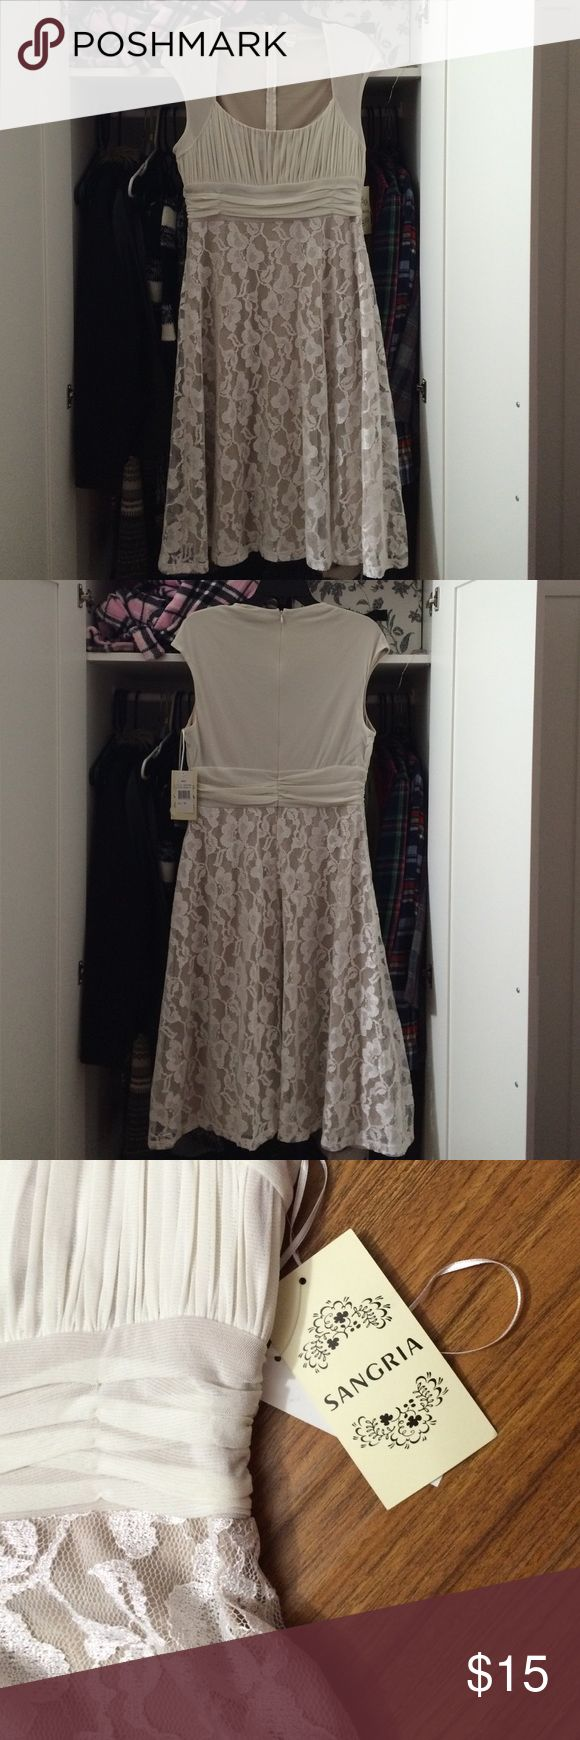 Sangria Cream/Nude Colored Lace Dress This dress is very beautiful. It's perfect for any type of formal occasion like wedding, dinners, baby showers, parties, etc. The lace shines in the light and makes this dress look flawless! Sangria Dresses